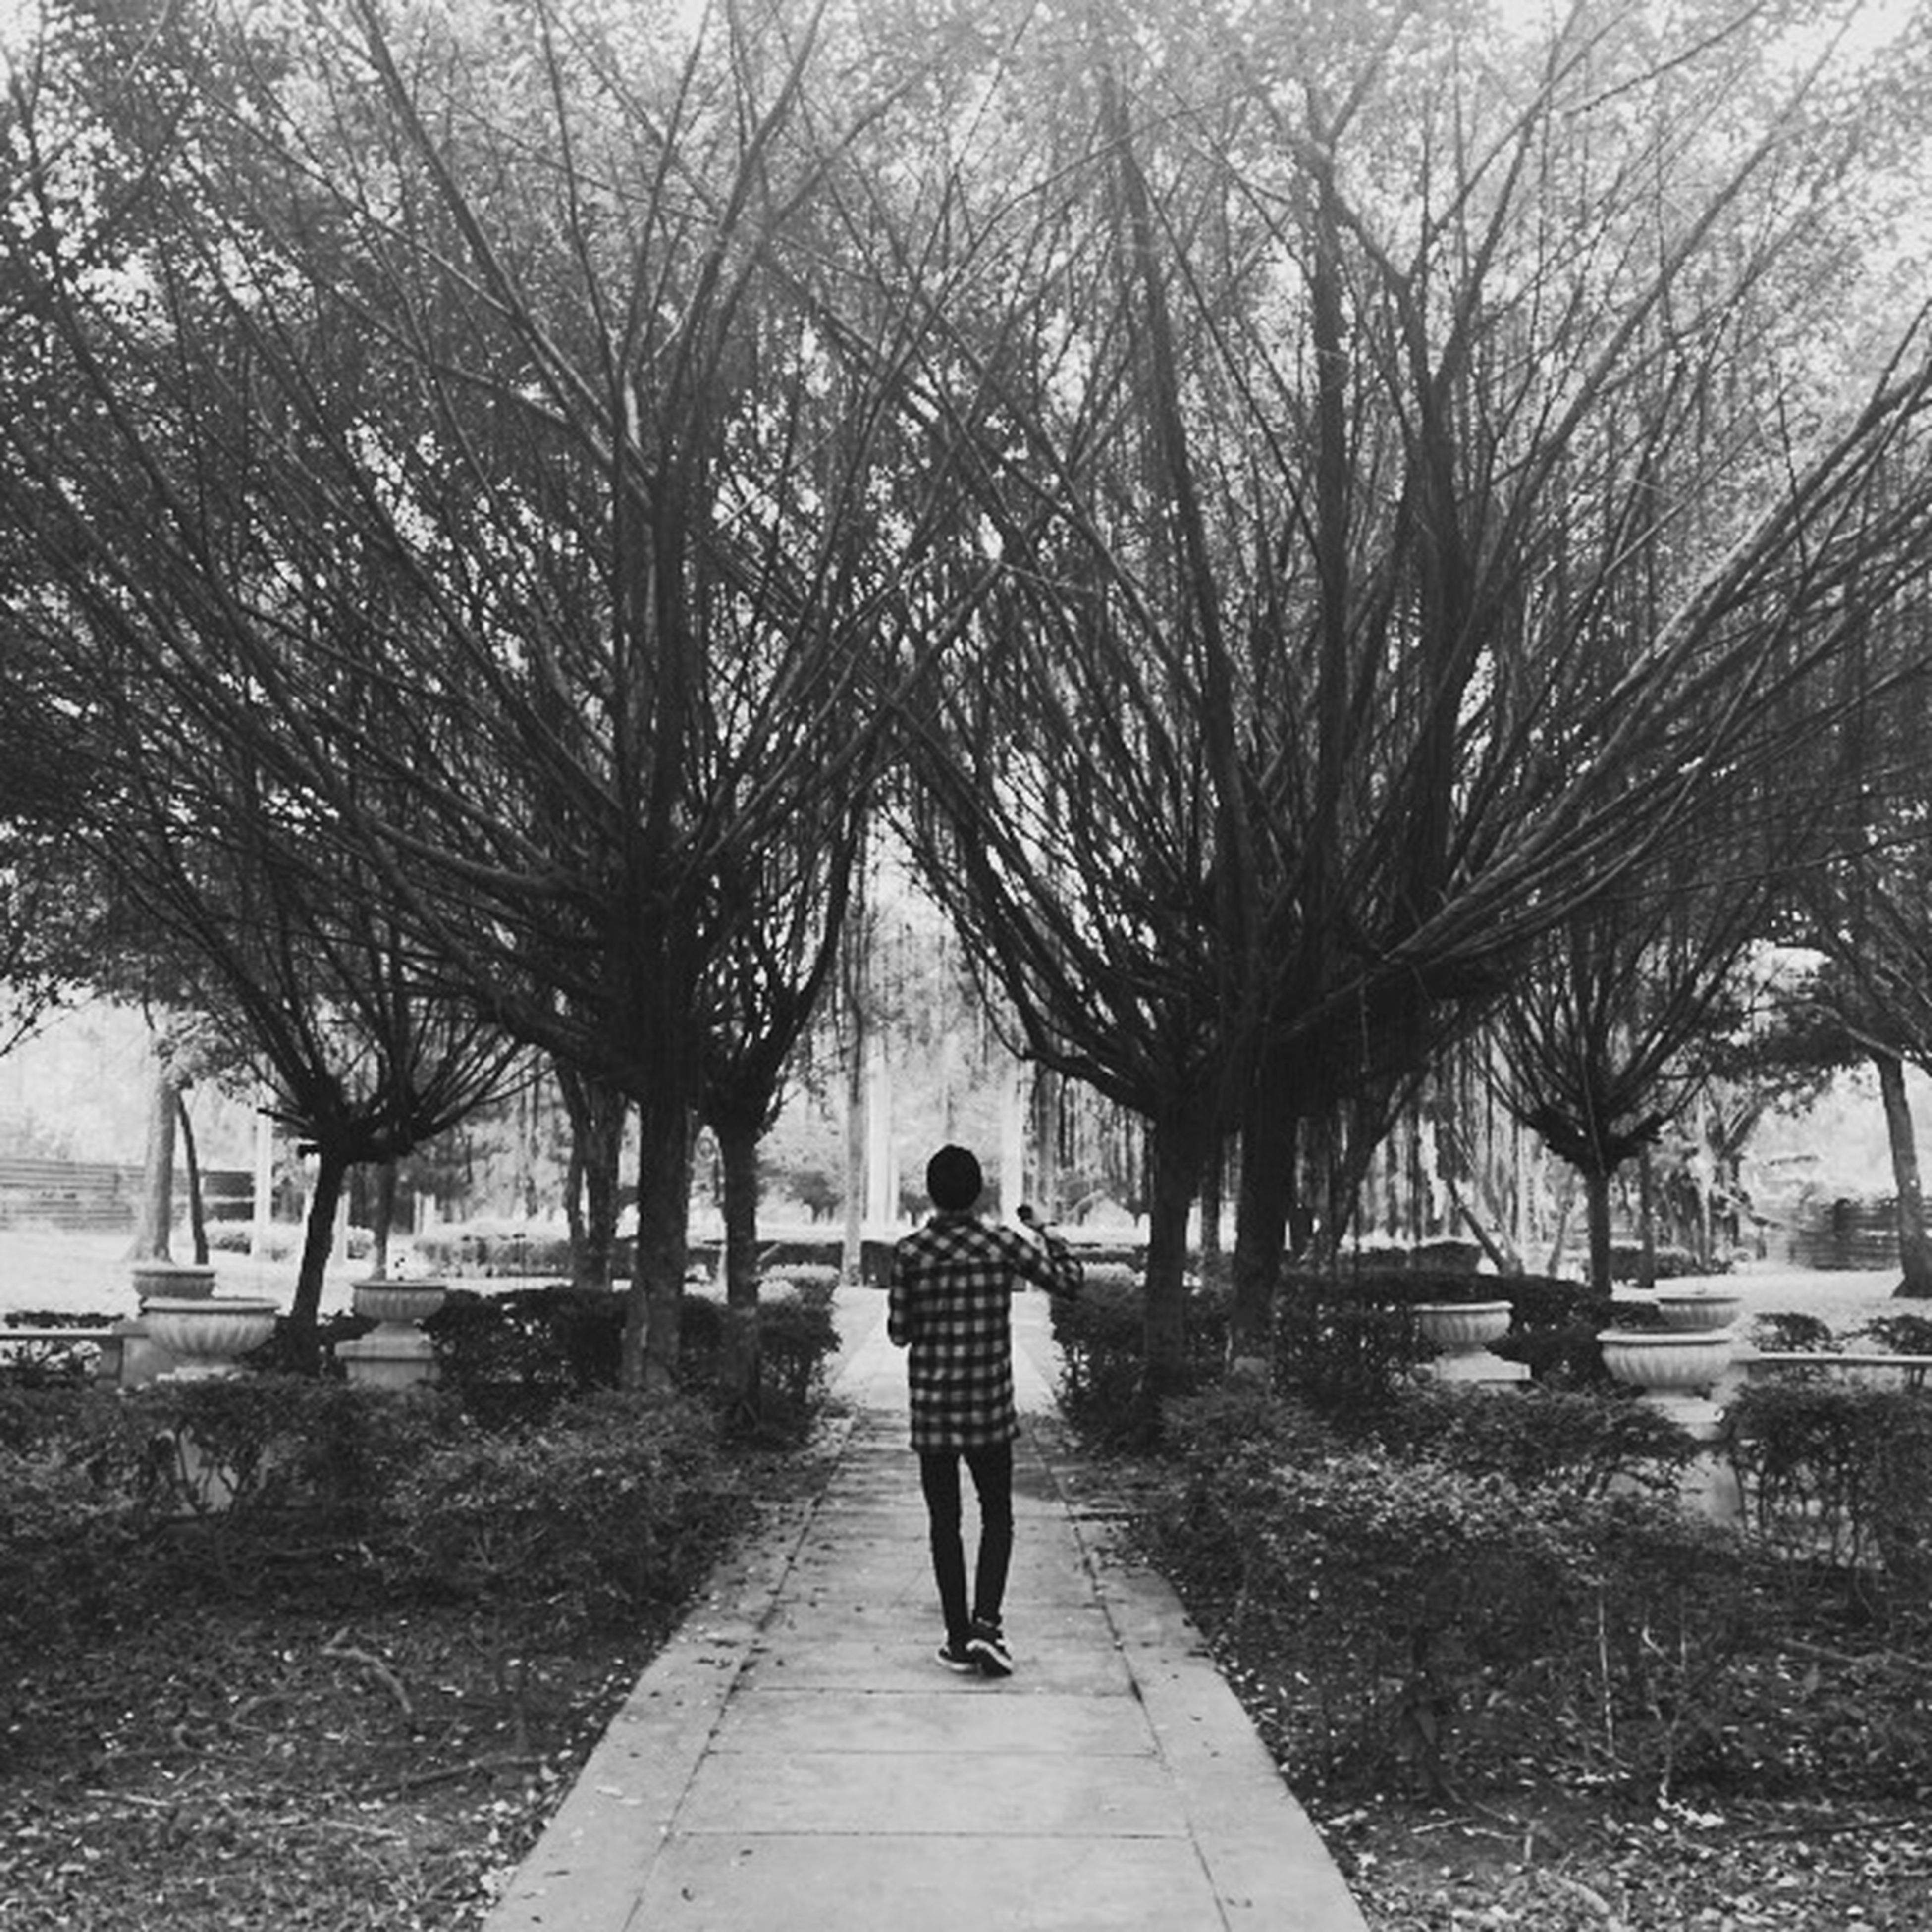 tree, full length, lifestyles, rear view, walking, leisure activity, the way forward, men, person, footpath, casual clothing, transportation, bare tree, street, road, day, outdoors, standing